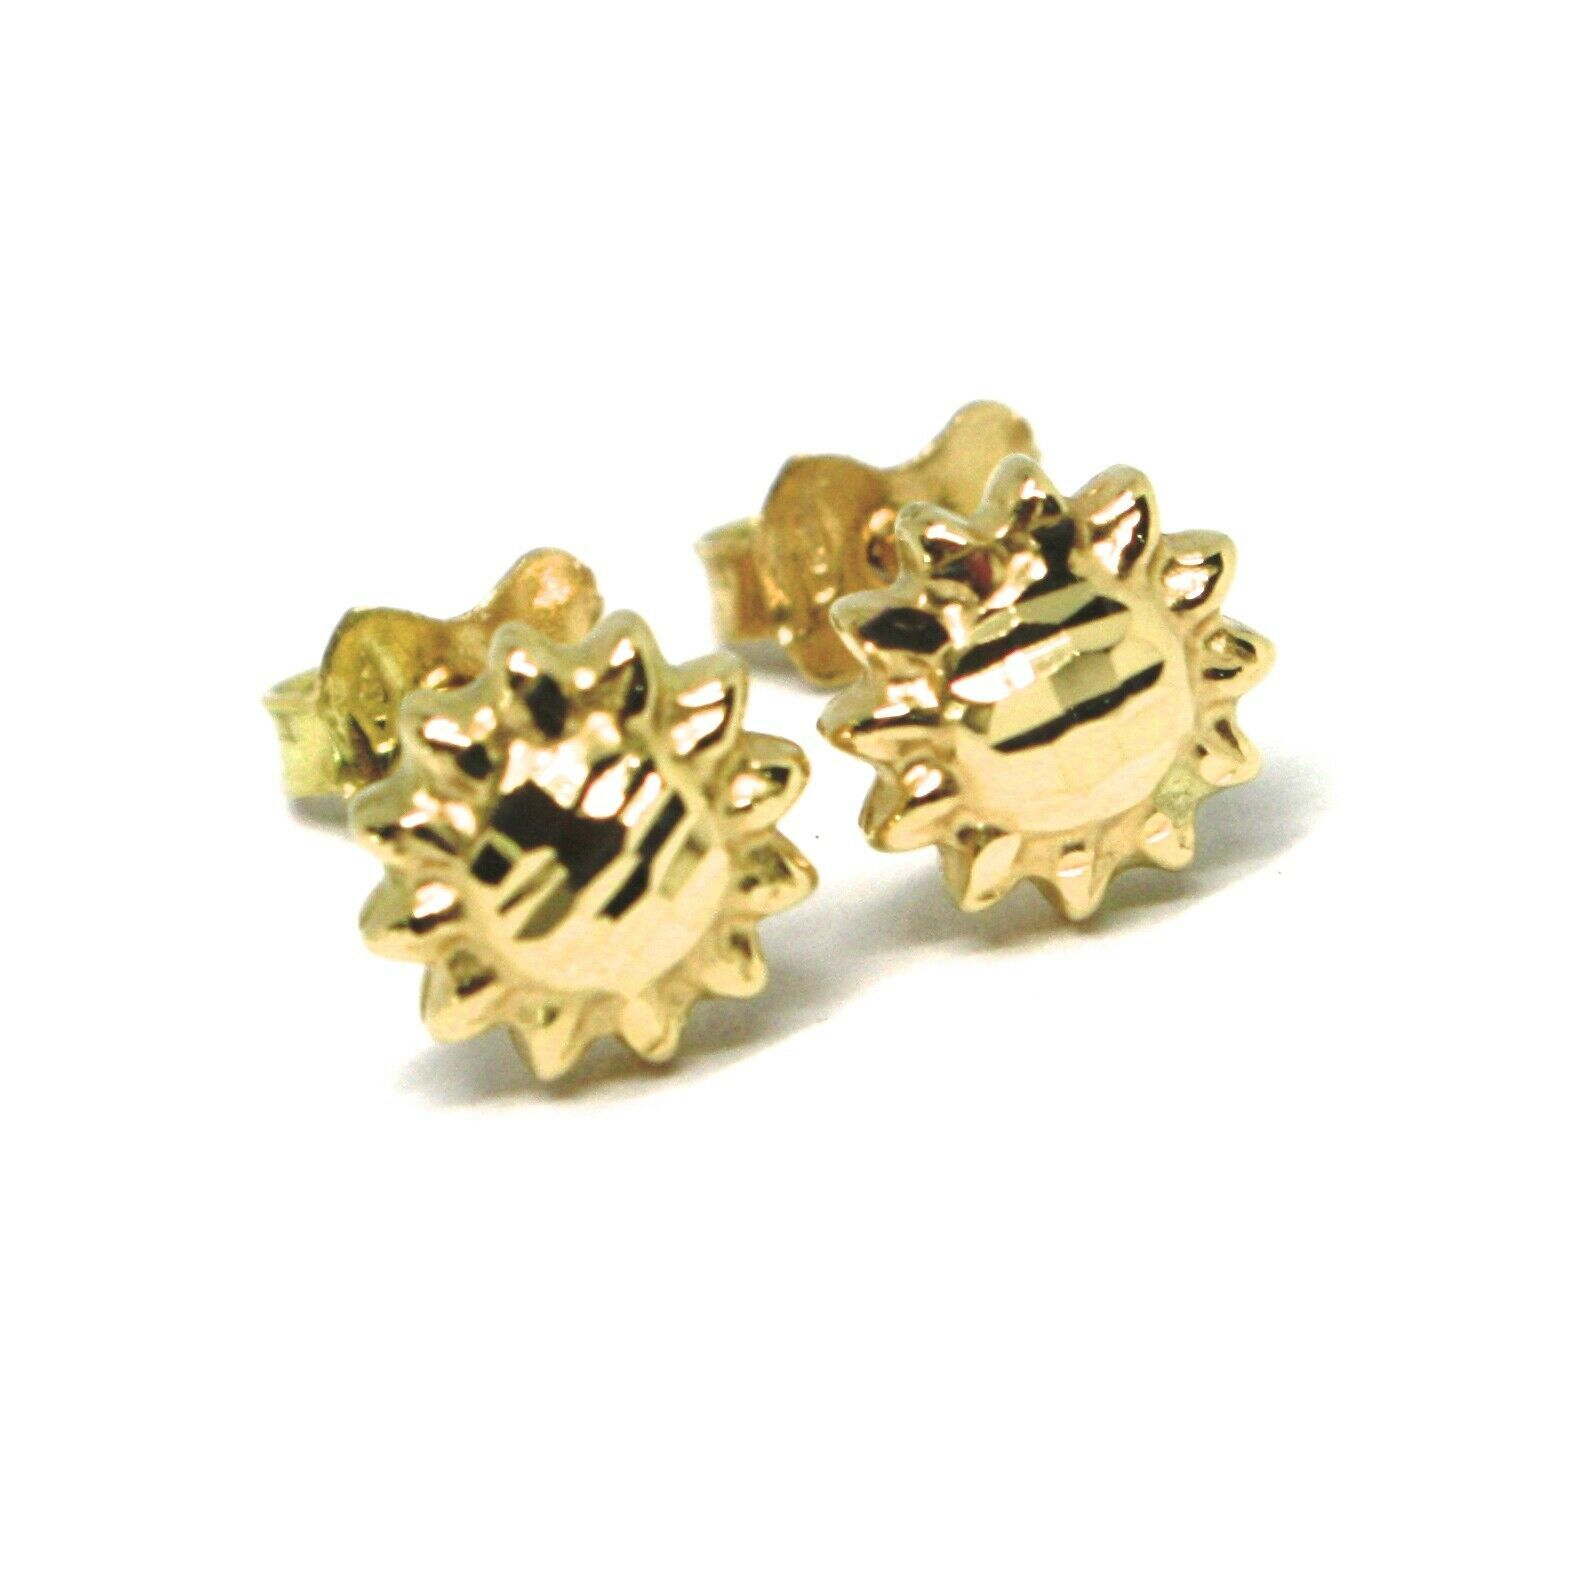 18K YELLOW GOLD KIDS EARRINGS, FINELY WORKED HAMMERED MINI SUN, 0.3 INCHES